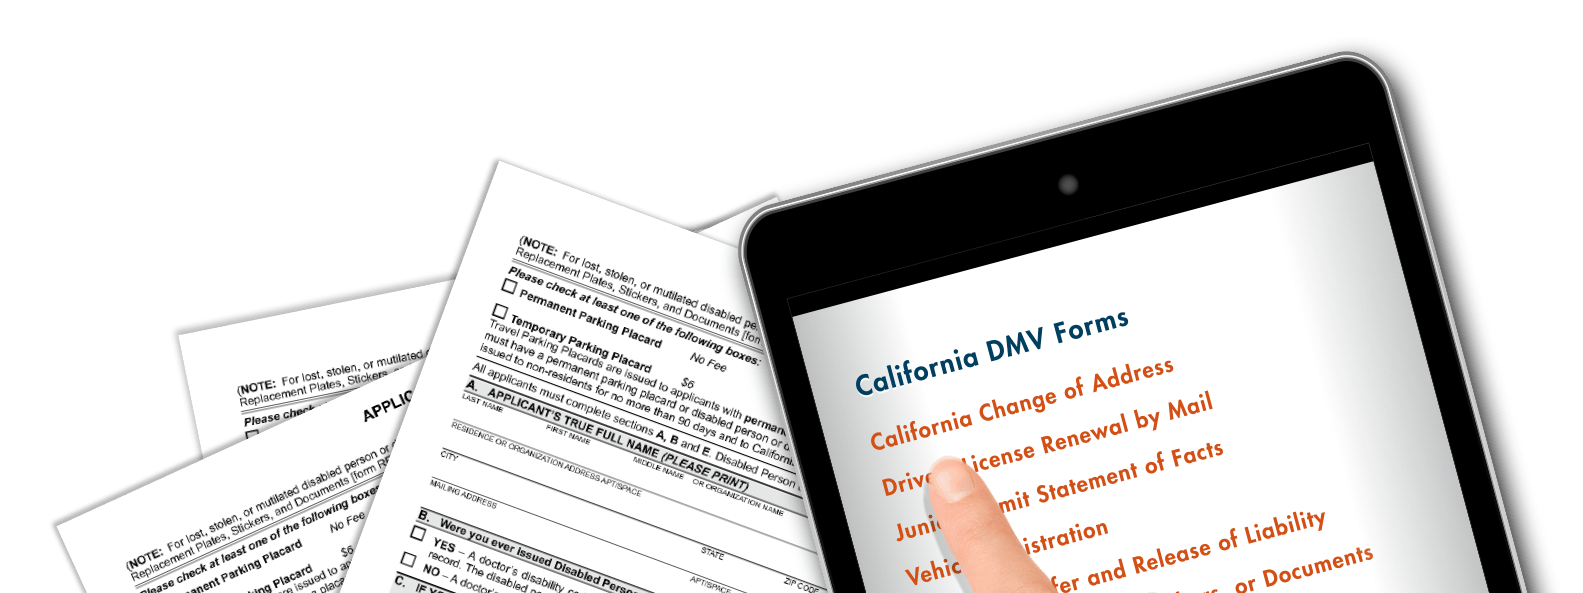 California Department of Motor Vehicles Forms – DriversEd com